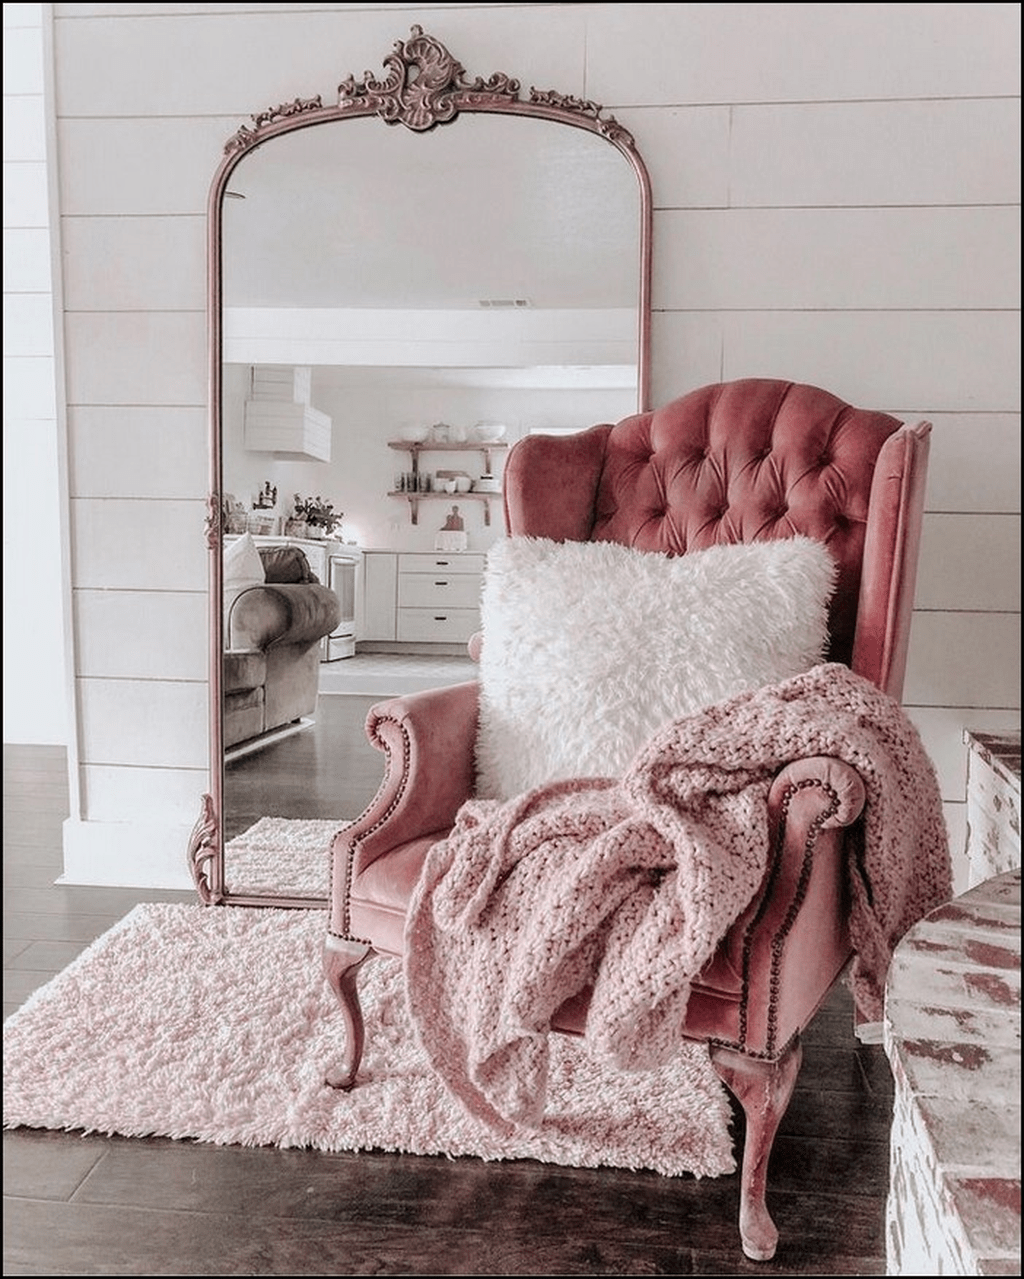 Beautiful shabby chic bedroom decoration ideas that have never seen #homedecor #decorideas